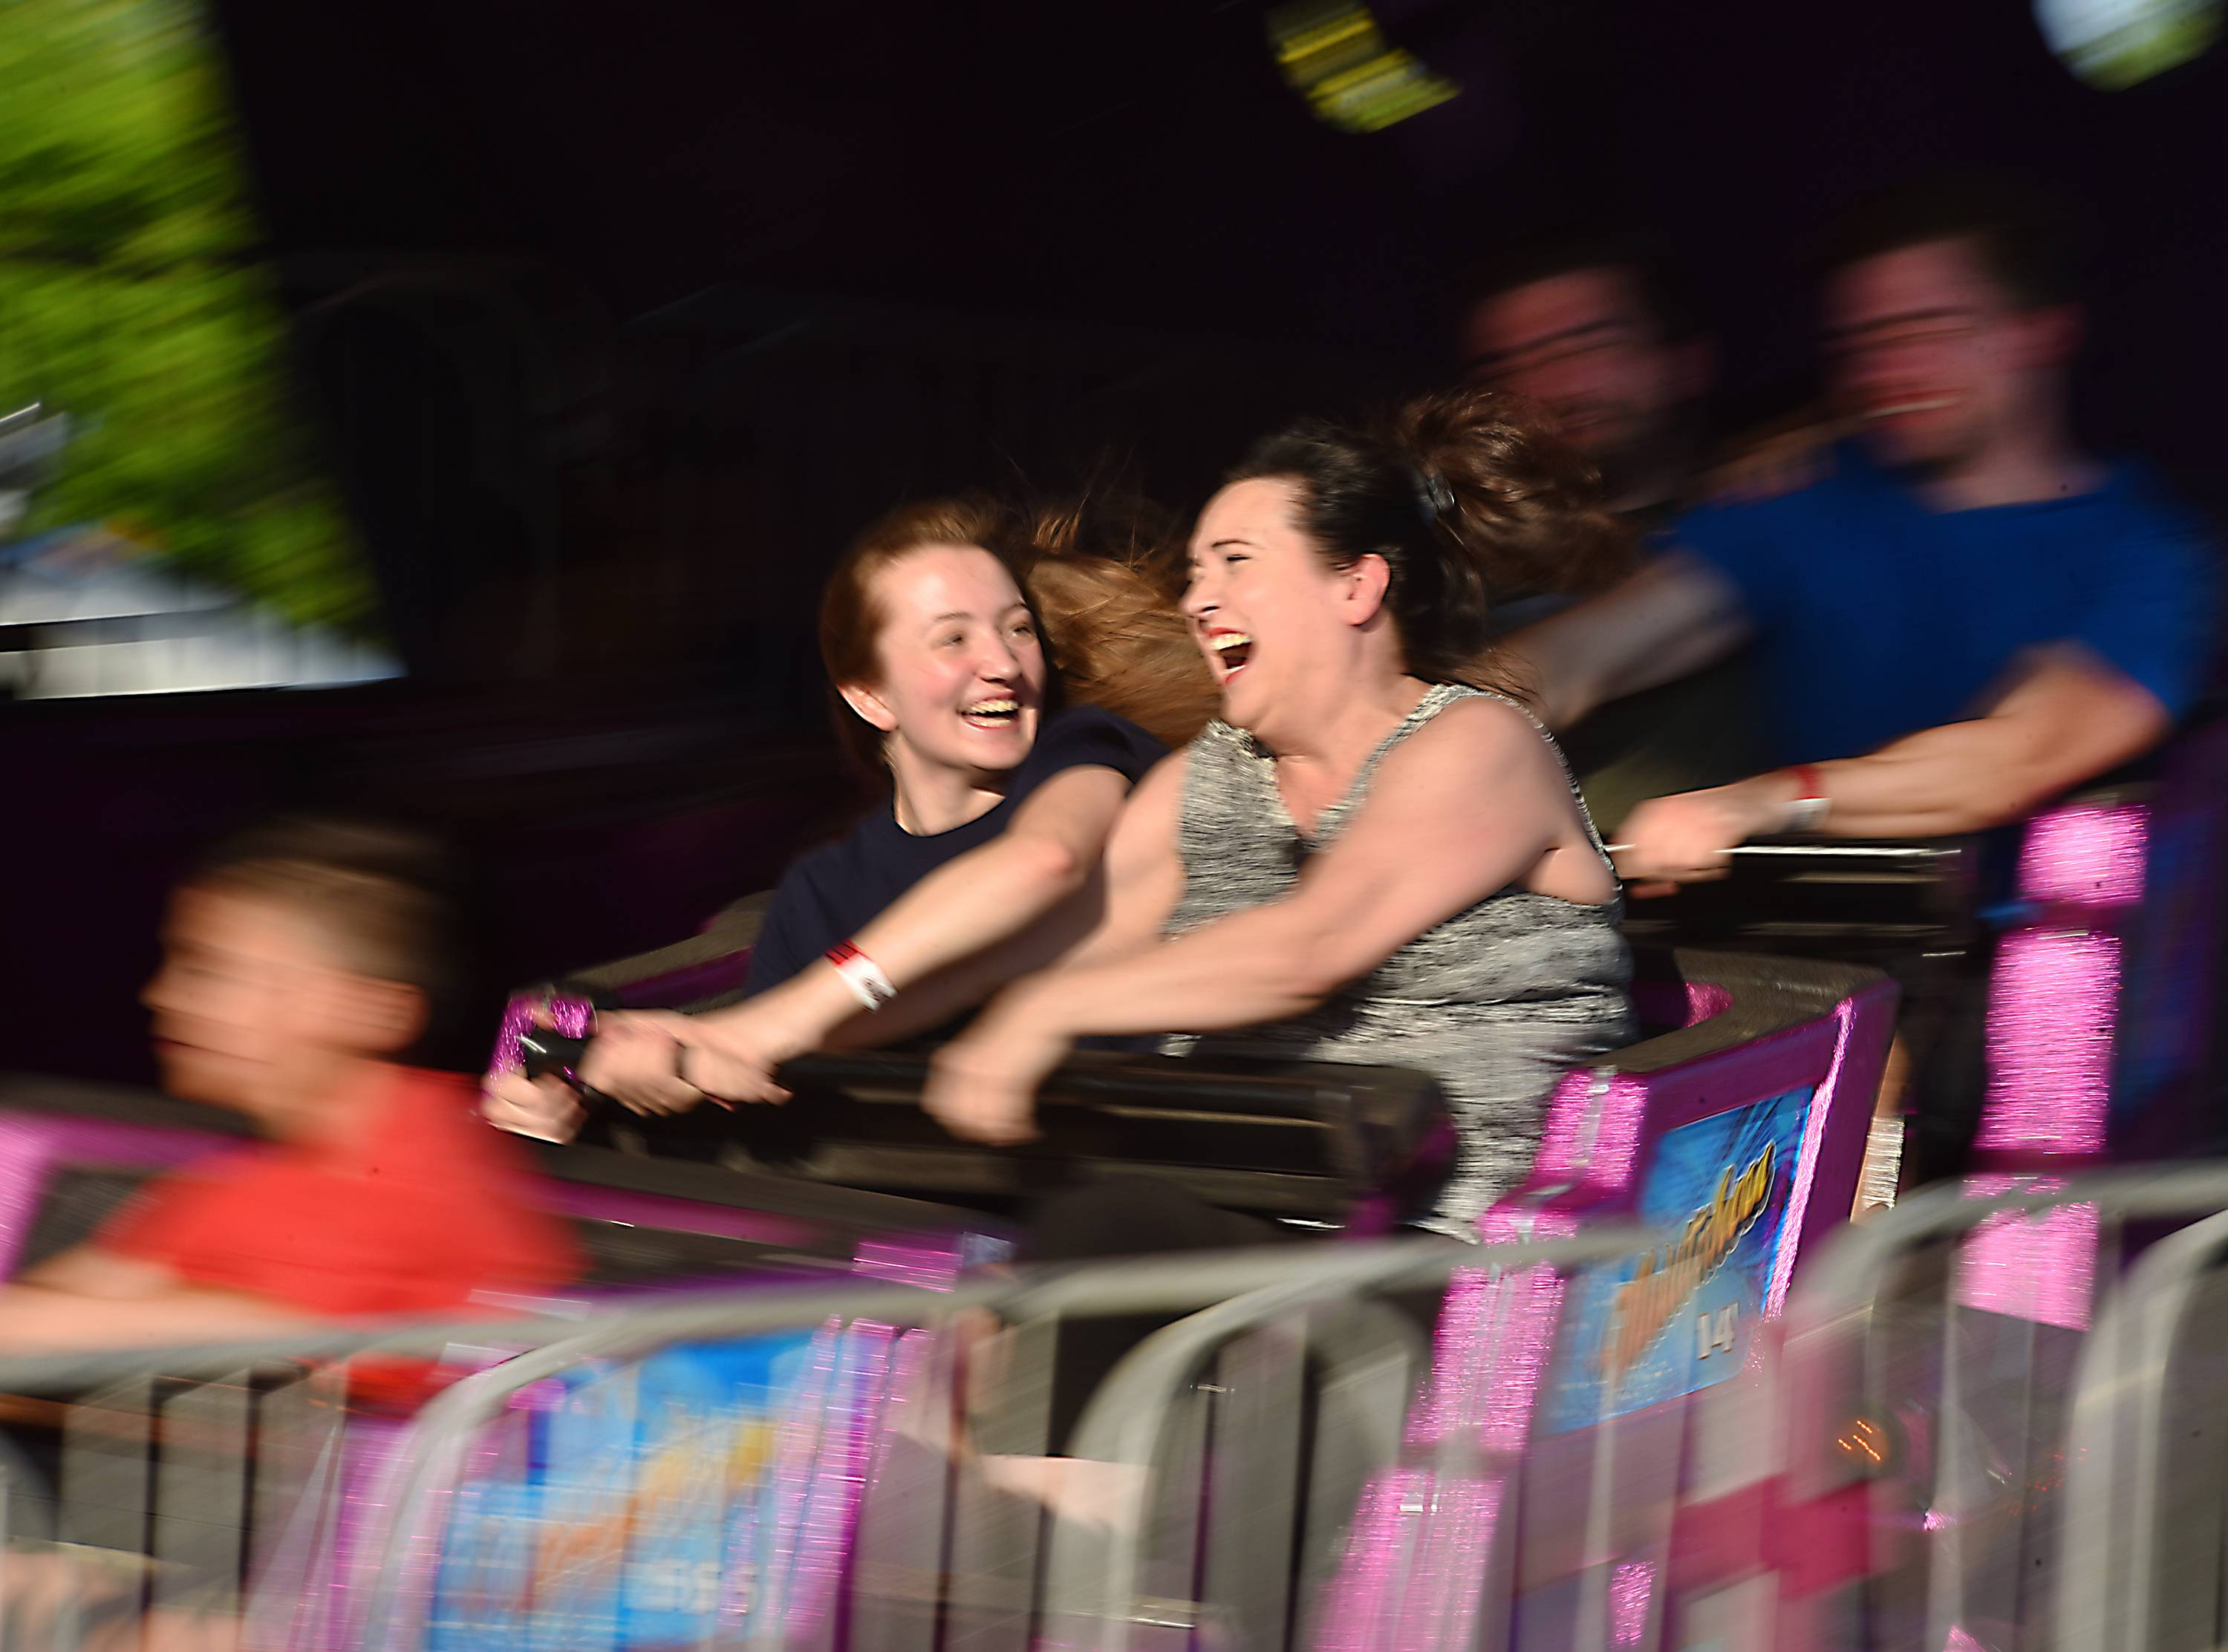 Shelly Banks looks at her mother Martha as they hang on to the spinning Matterhorn ride at the Glendale Heights Fest opening night Wednesday evening. They are from Bartlett.